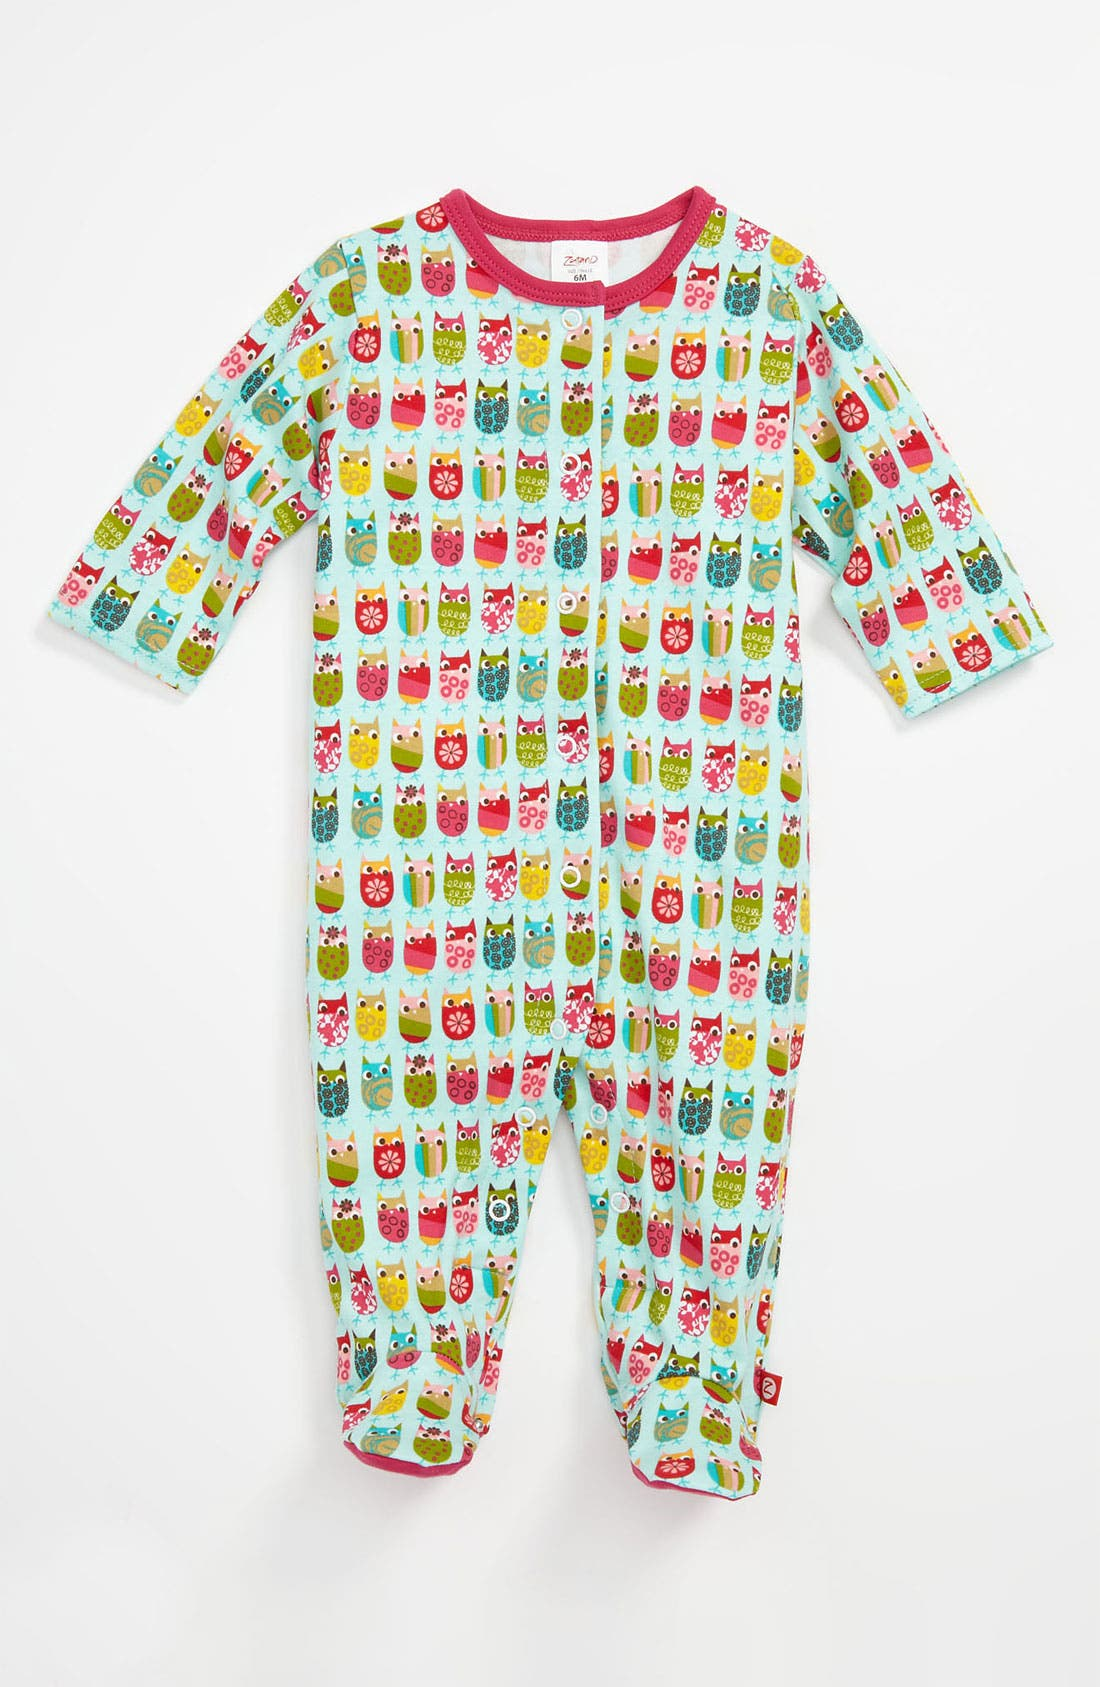 Alternate Image 1 Selected - Zutano 'Owls' Footie (Infant)